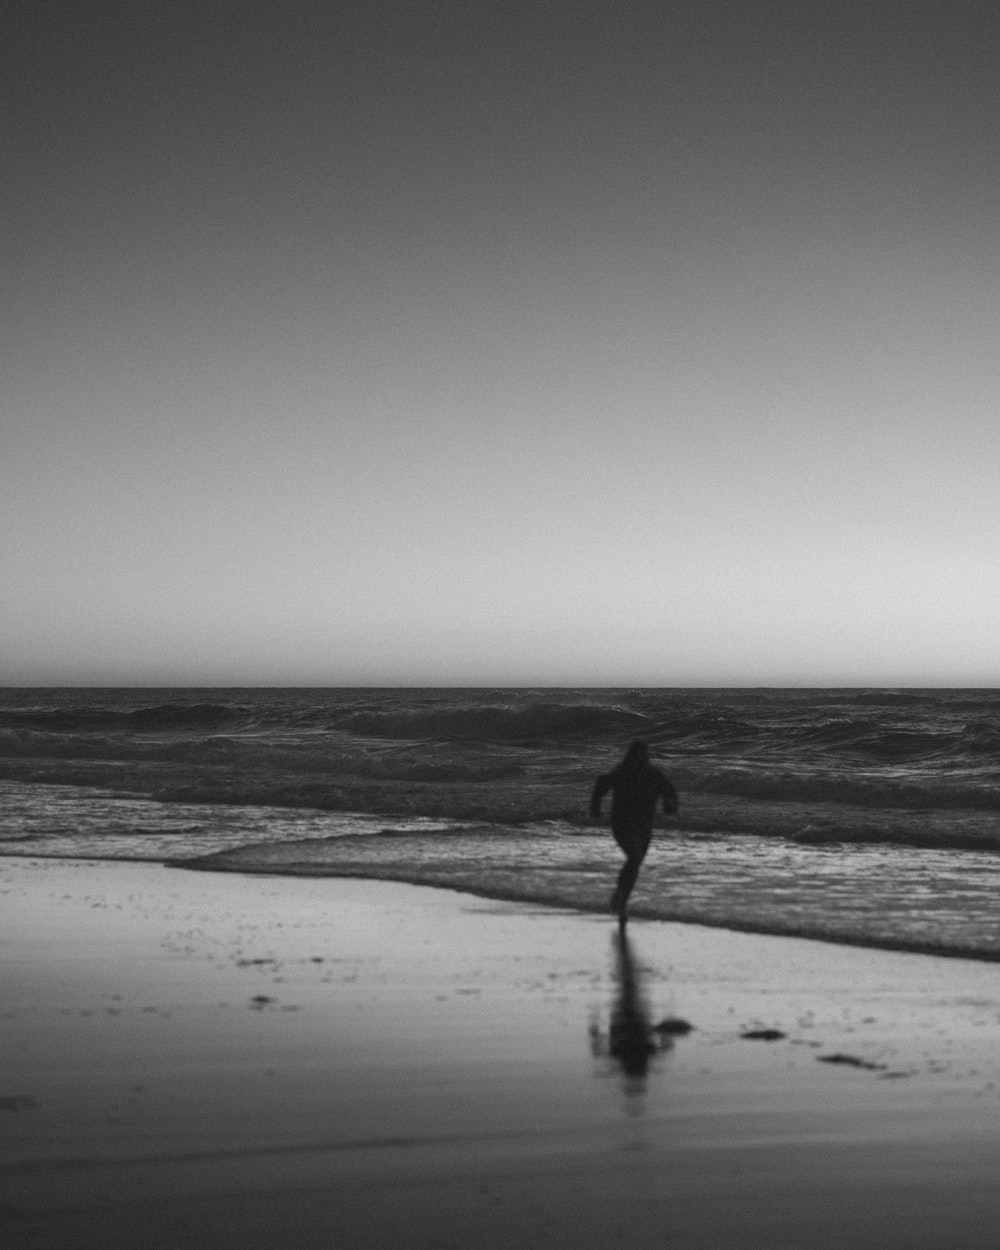 silhouette of person walking on beach during daytime